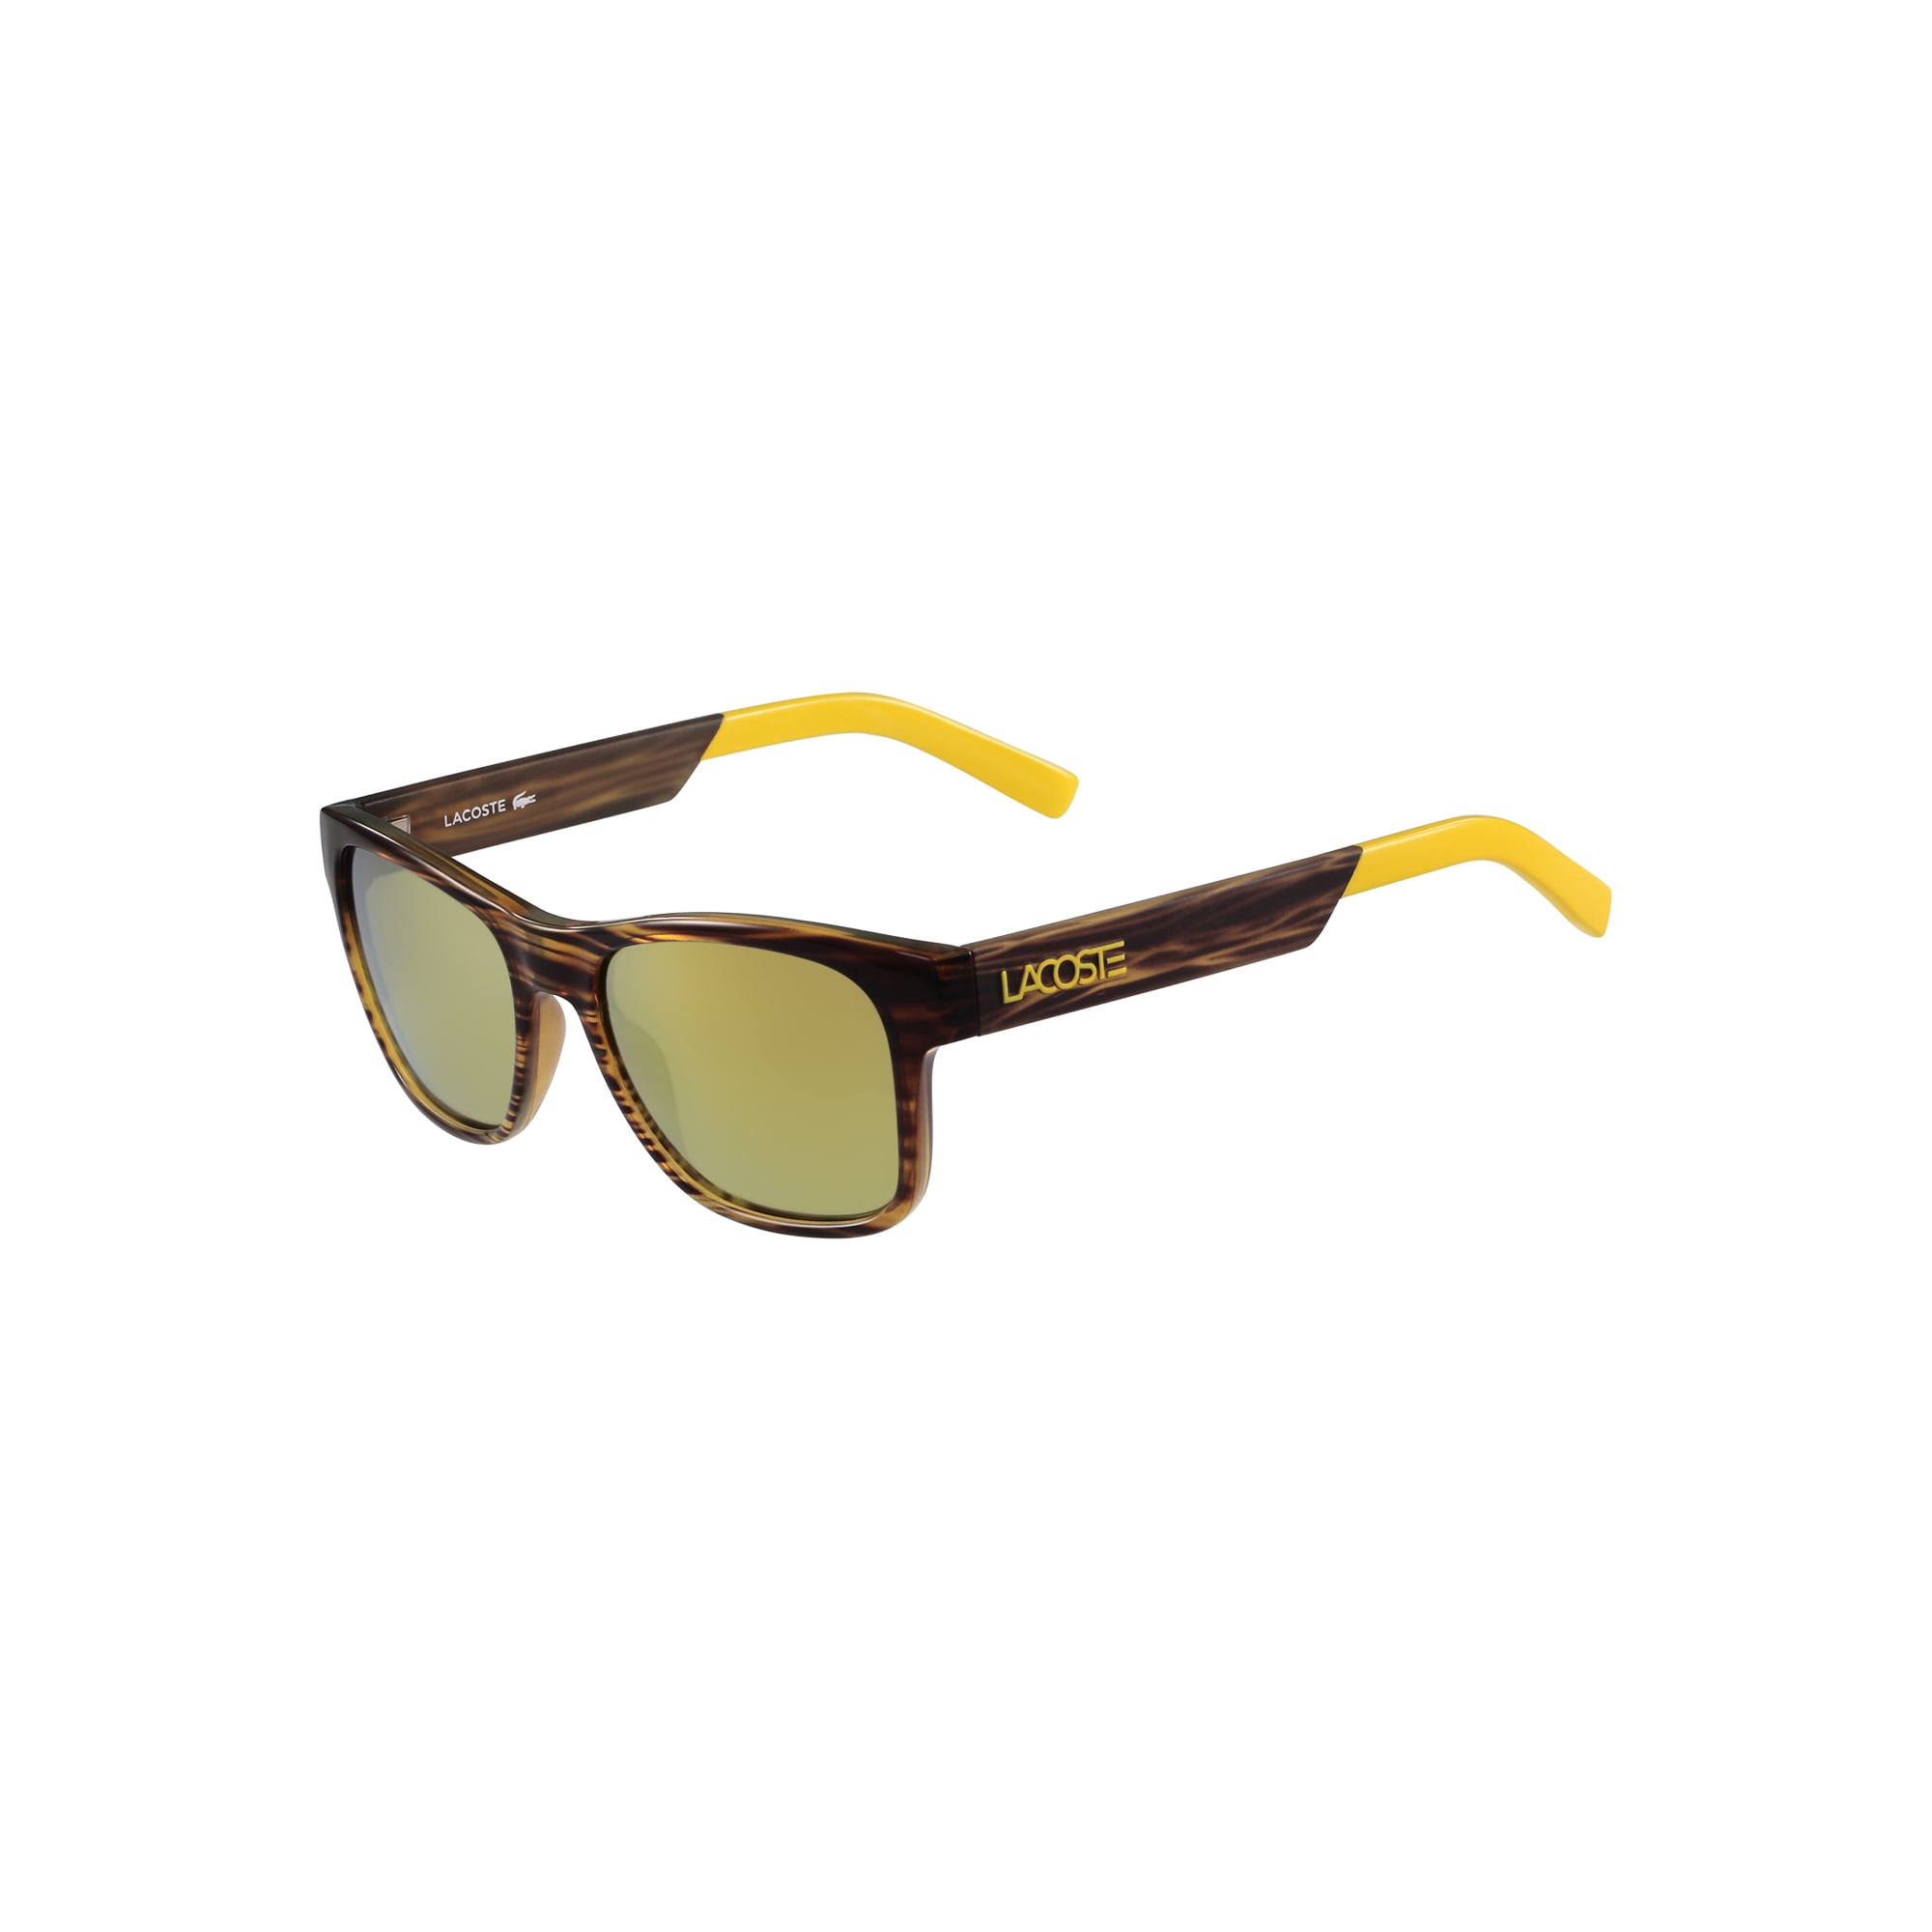 Color Block Sunglasses with Plastic Frames